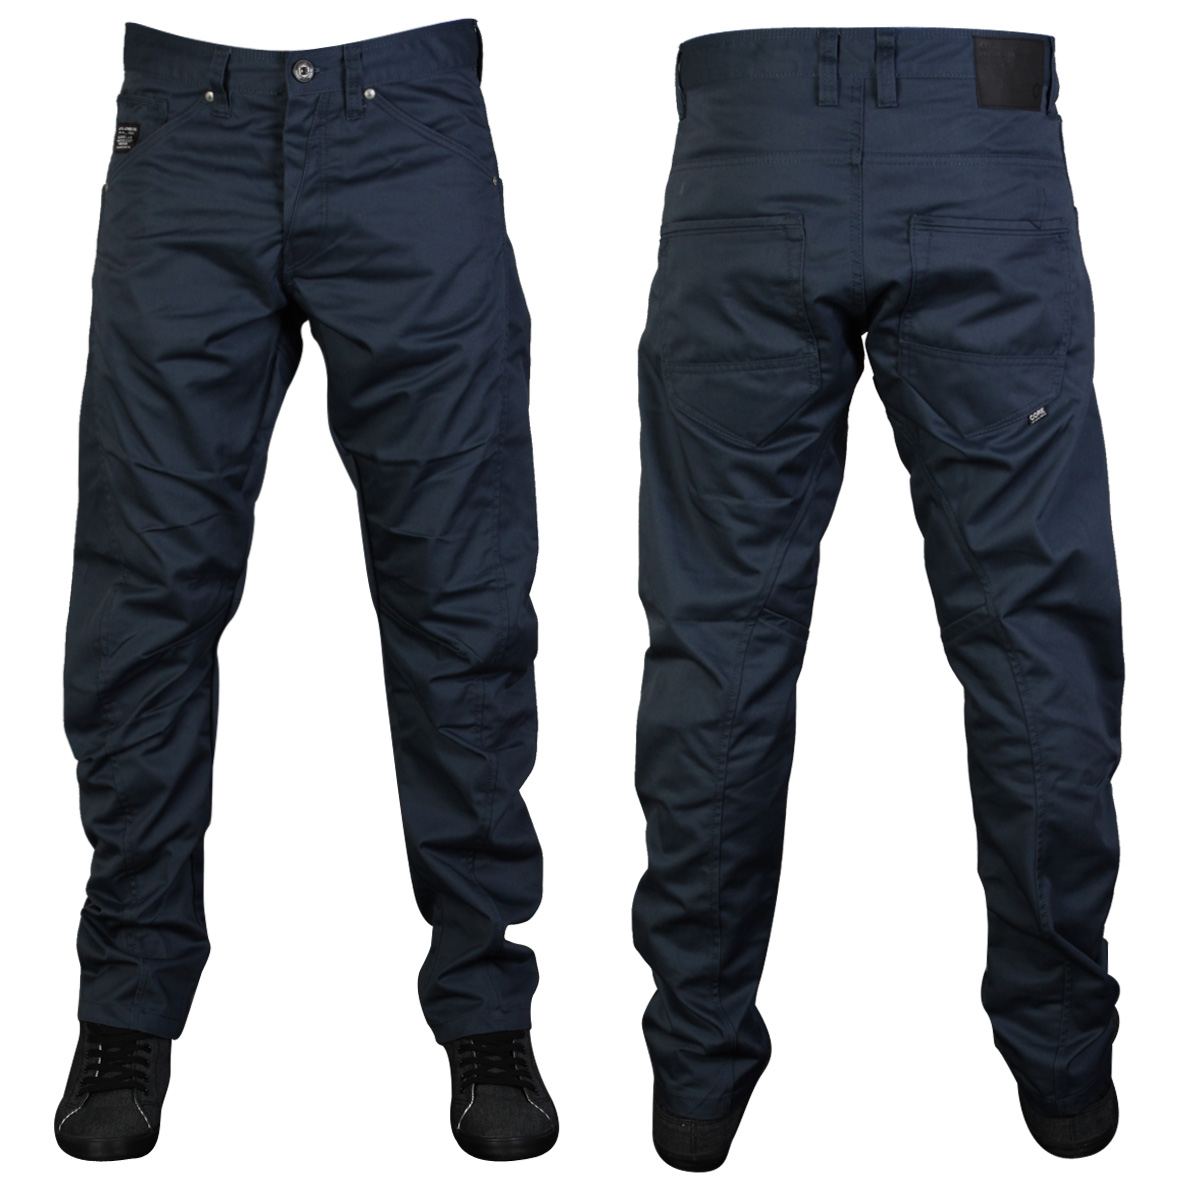 new mens navy core jack jones jeans dale colin chinos. Black Bedroom Furniture Sets. Home Design Ideas